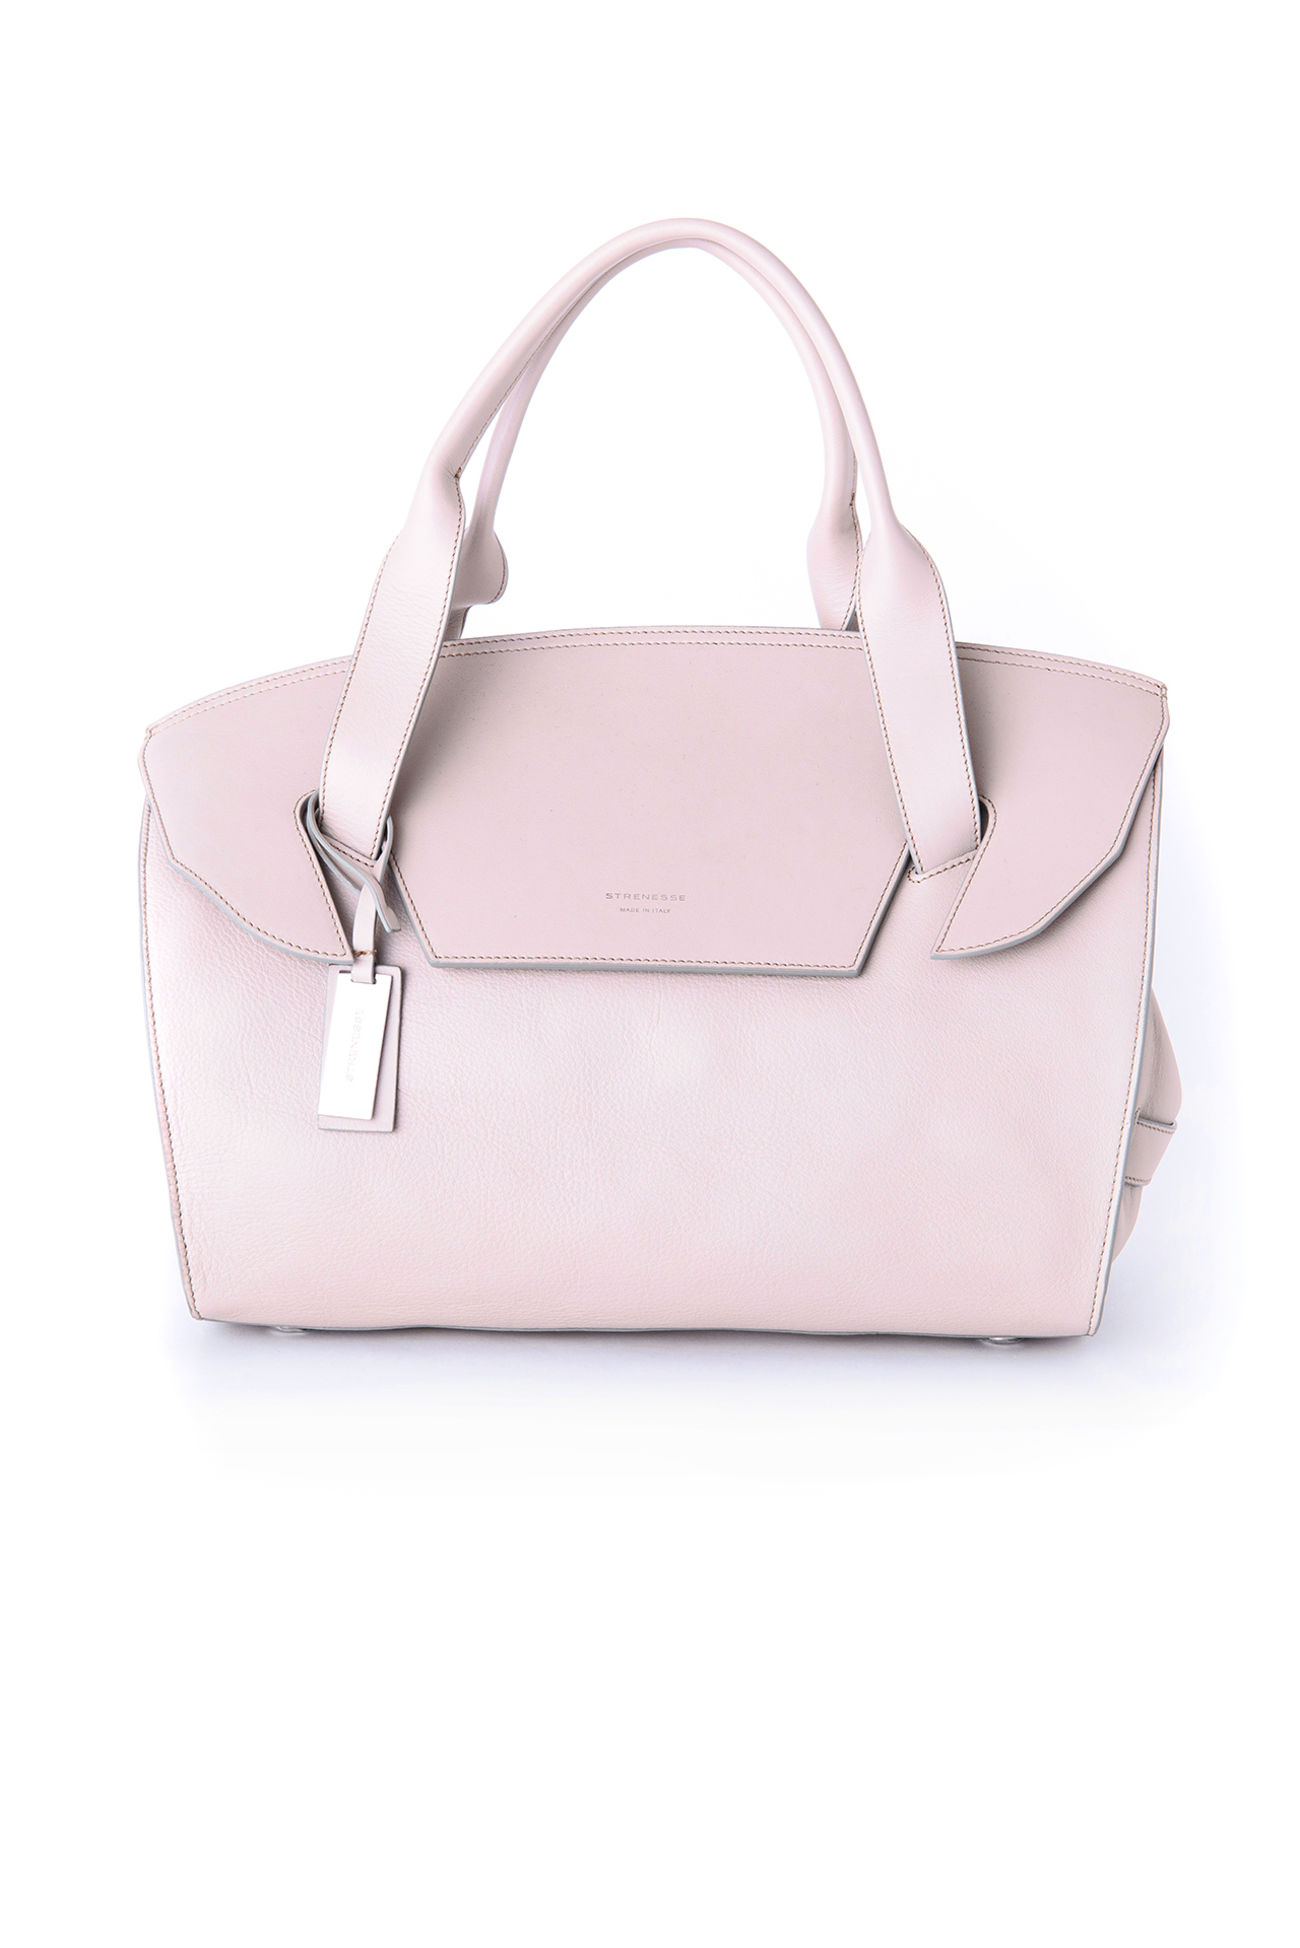 ELLEN Bag small aus Nappa Leder